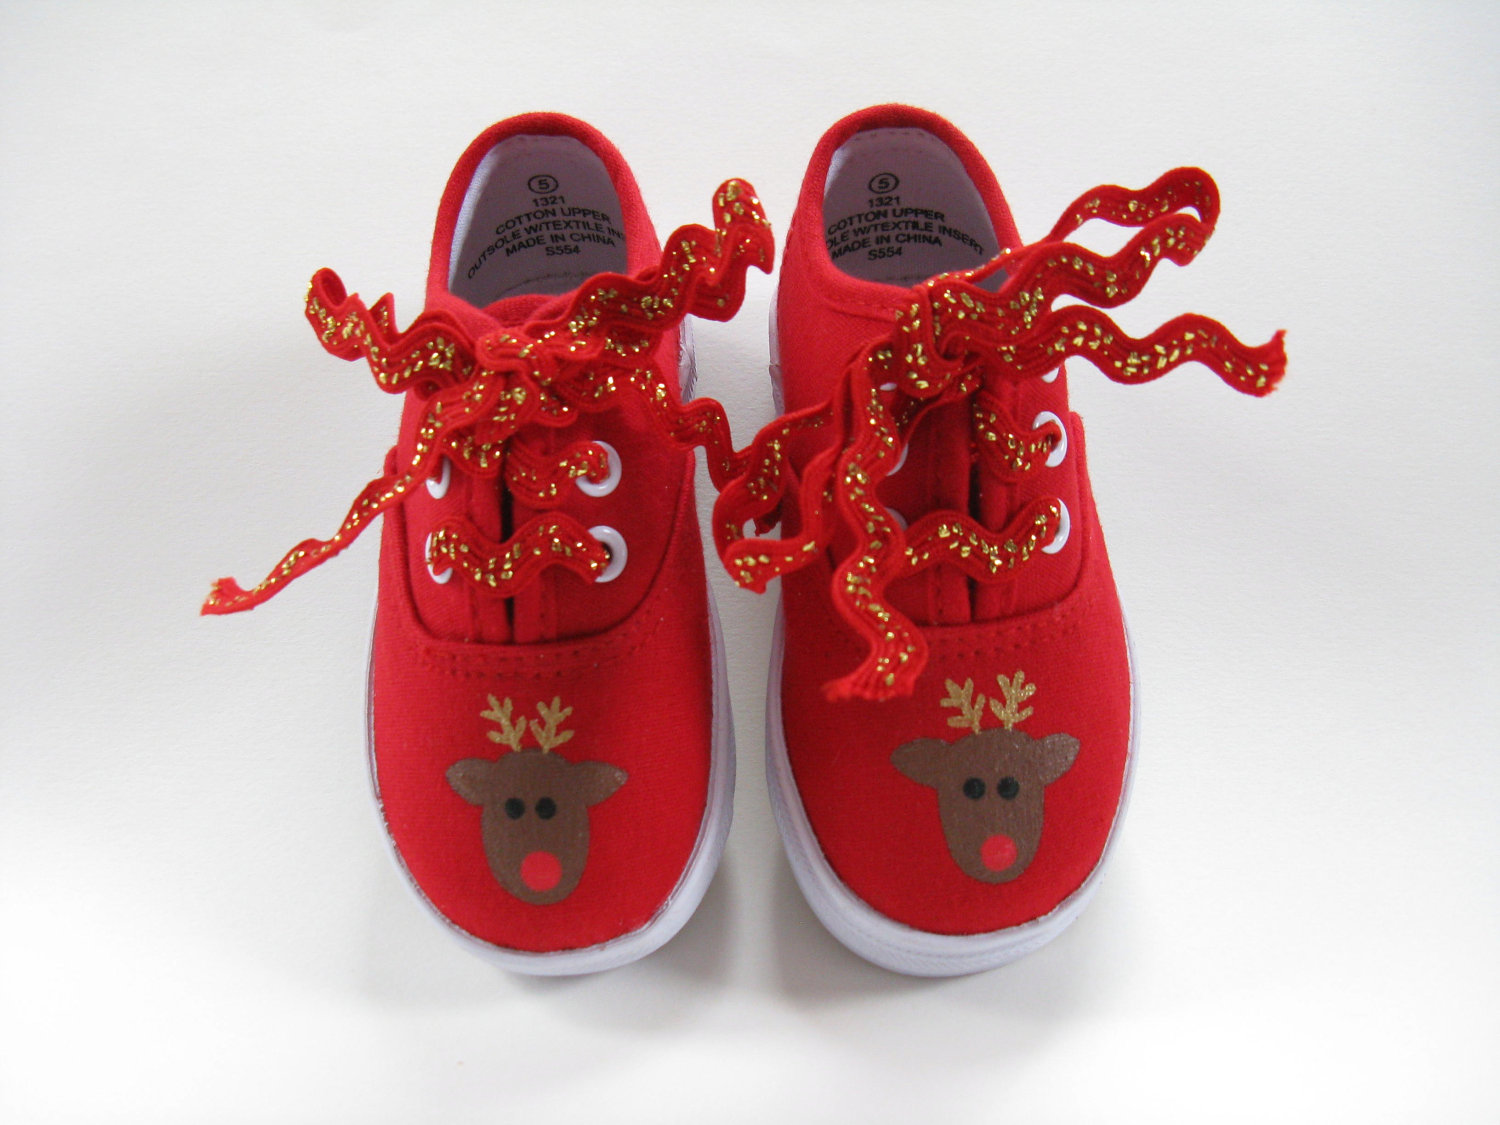 40 Super Cool Christmas Shoes and Ways to Decorate With It ...